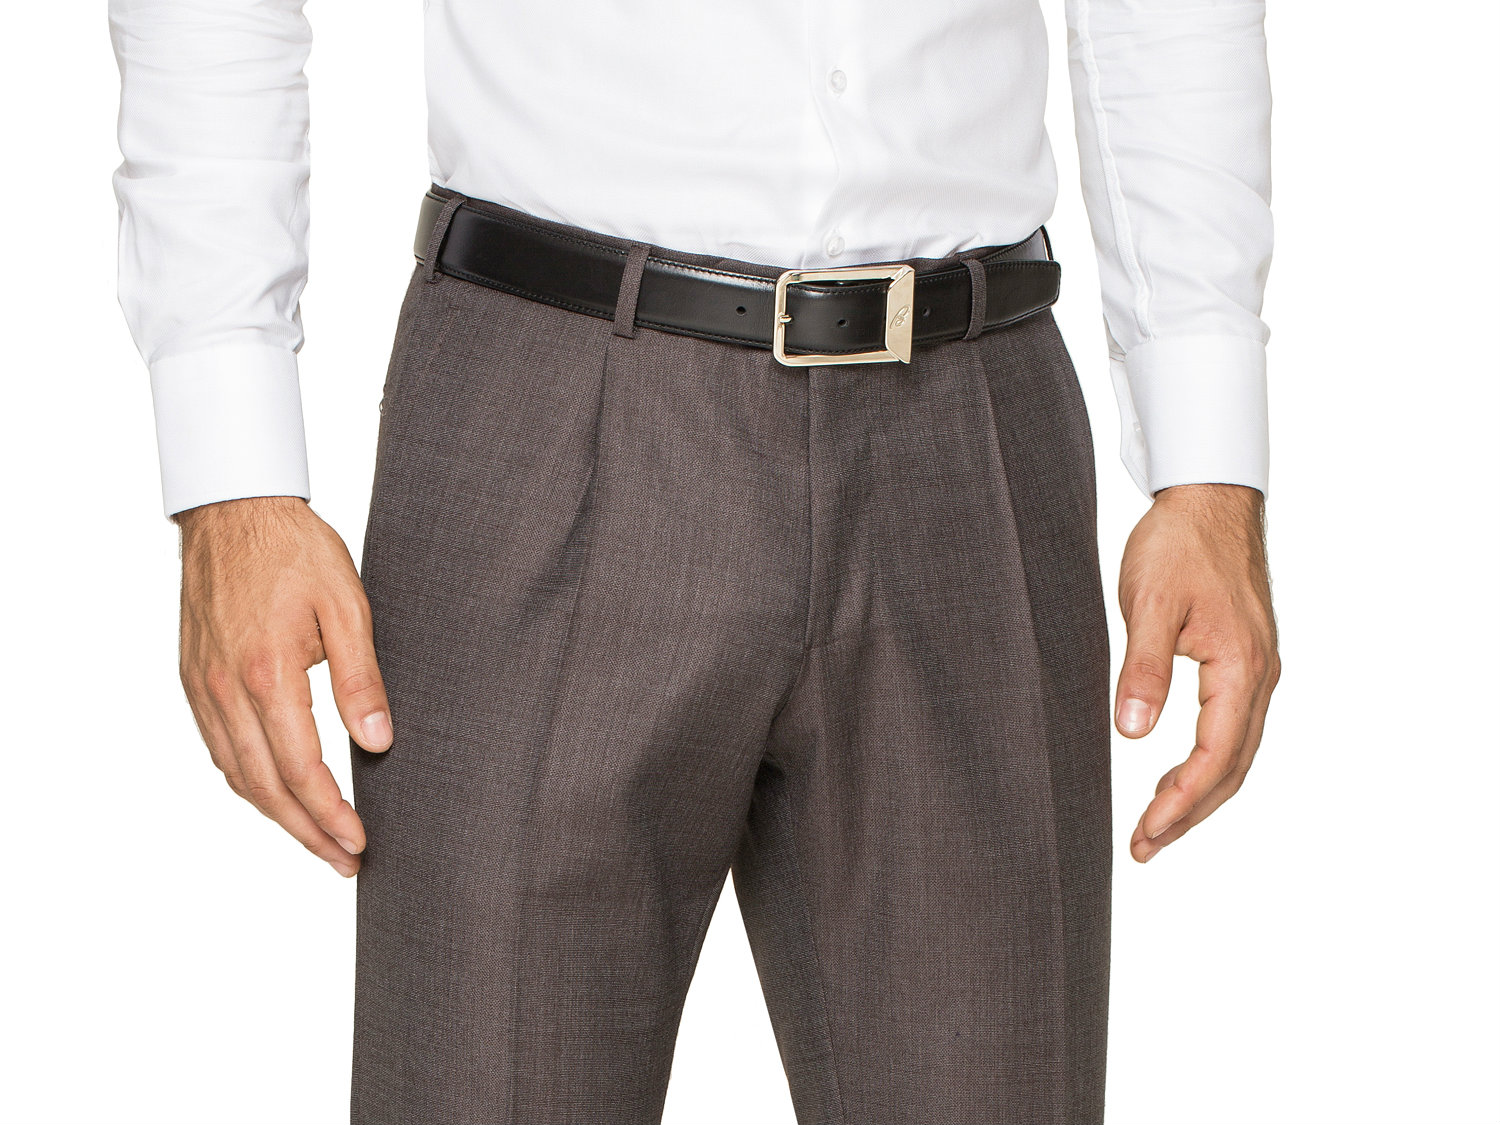 Pleated dress pants in style